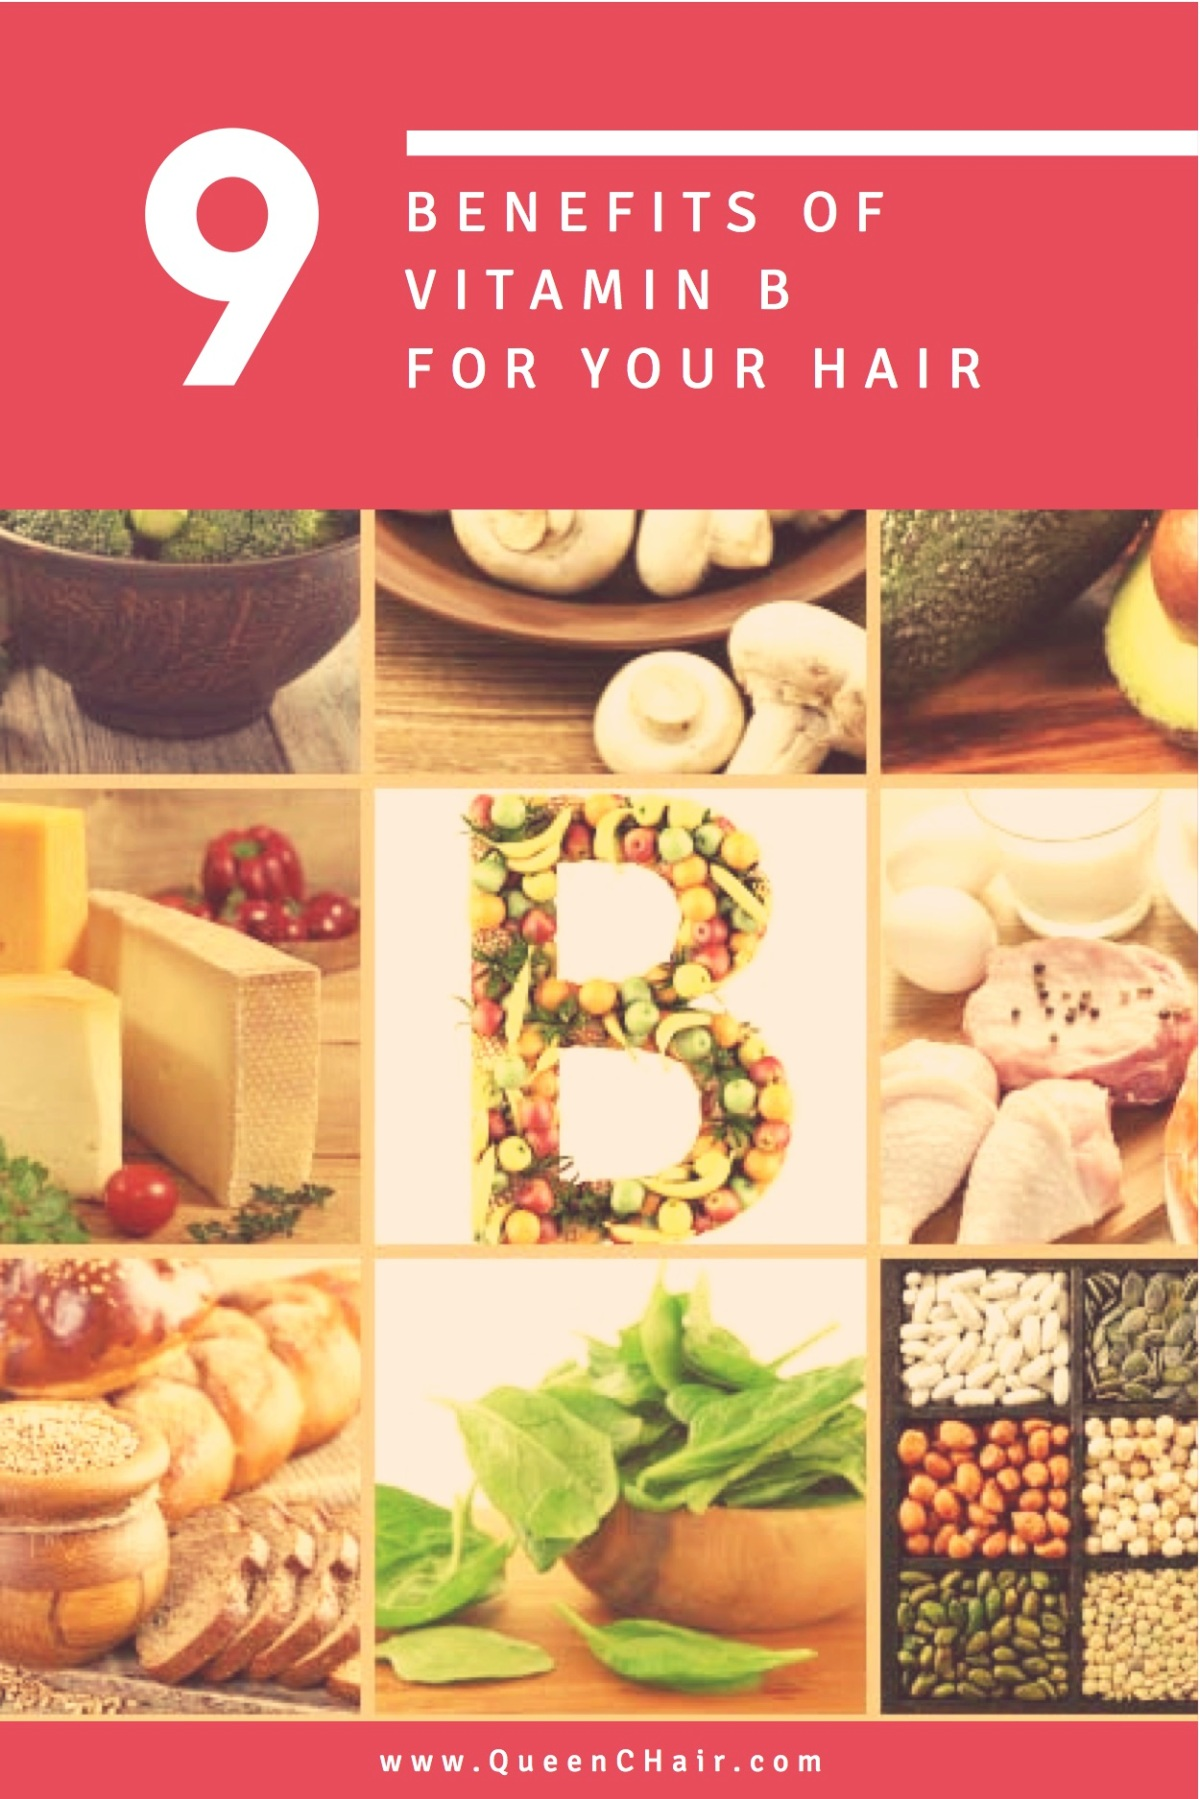 9 Benefits of Vitamin B for your hair1